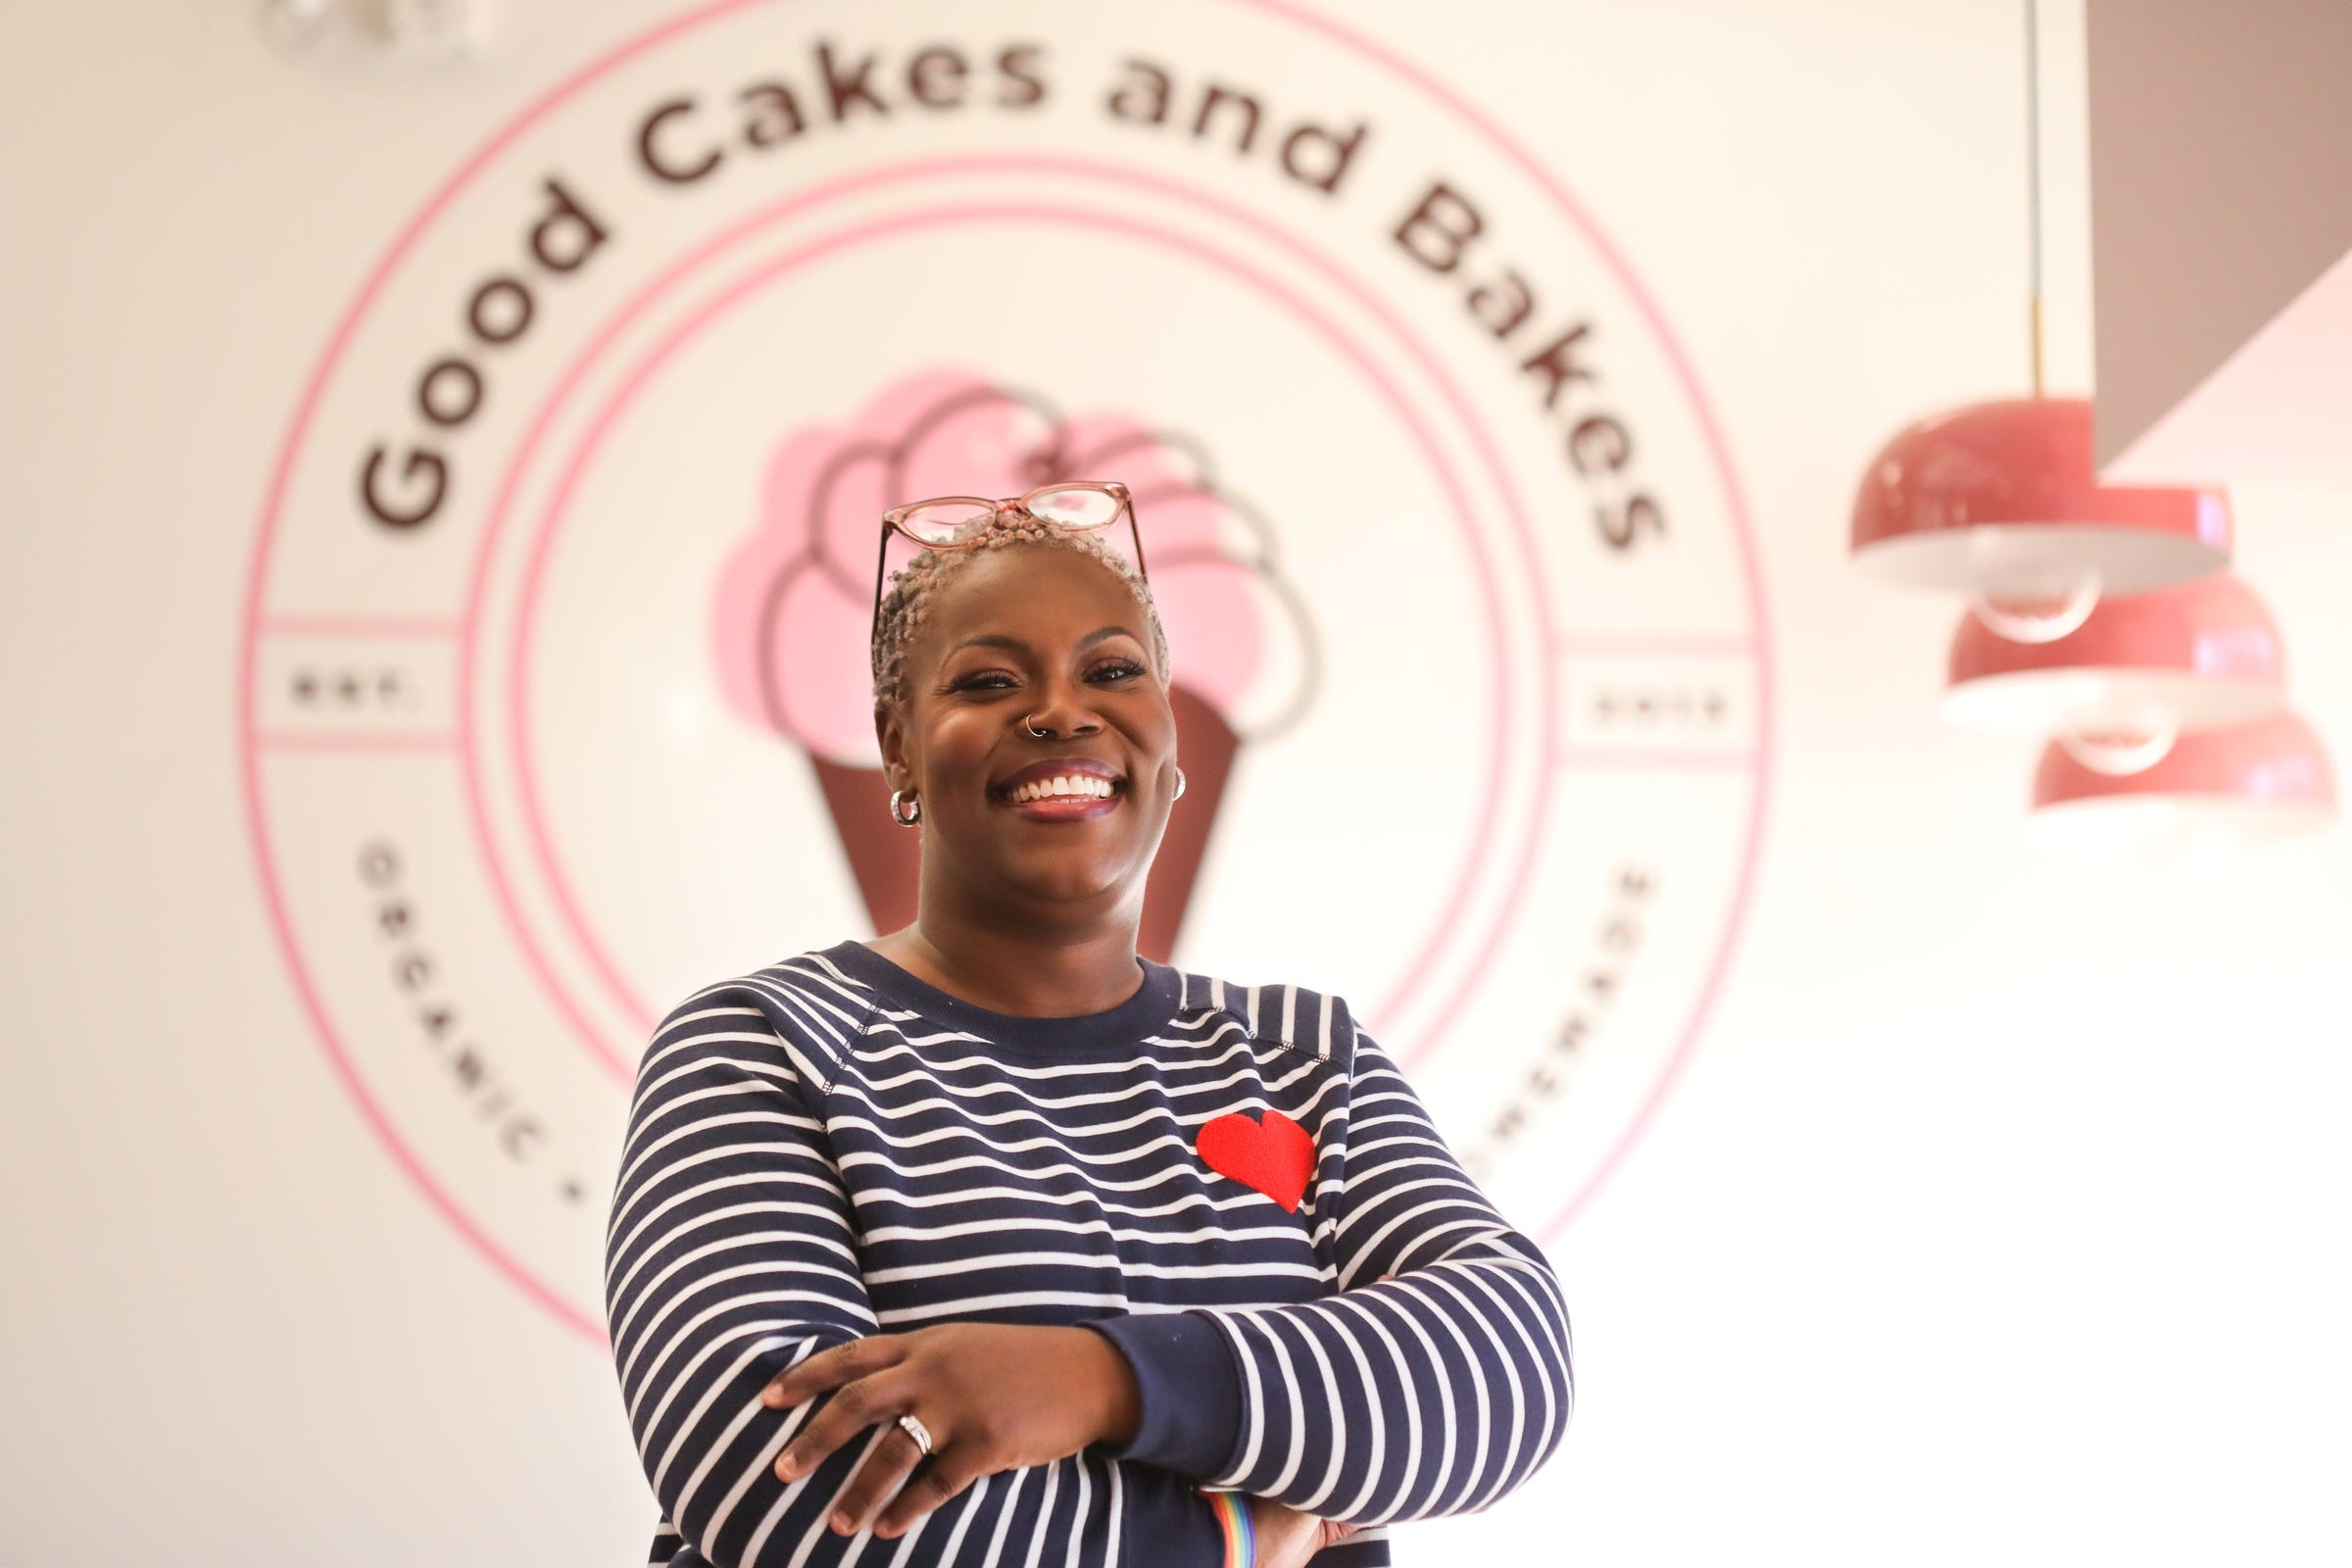 April Anderson is the co-owner of Good Cakes and Bakes on Livernois Avenue on the Avenue of Fashion in Detroit and is reopening Oct. 17th, after an interior remodel to increase kitchen and baking area for future cooking classes. The cafe area has also been remodeled and designed for social distancing.